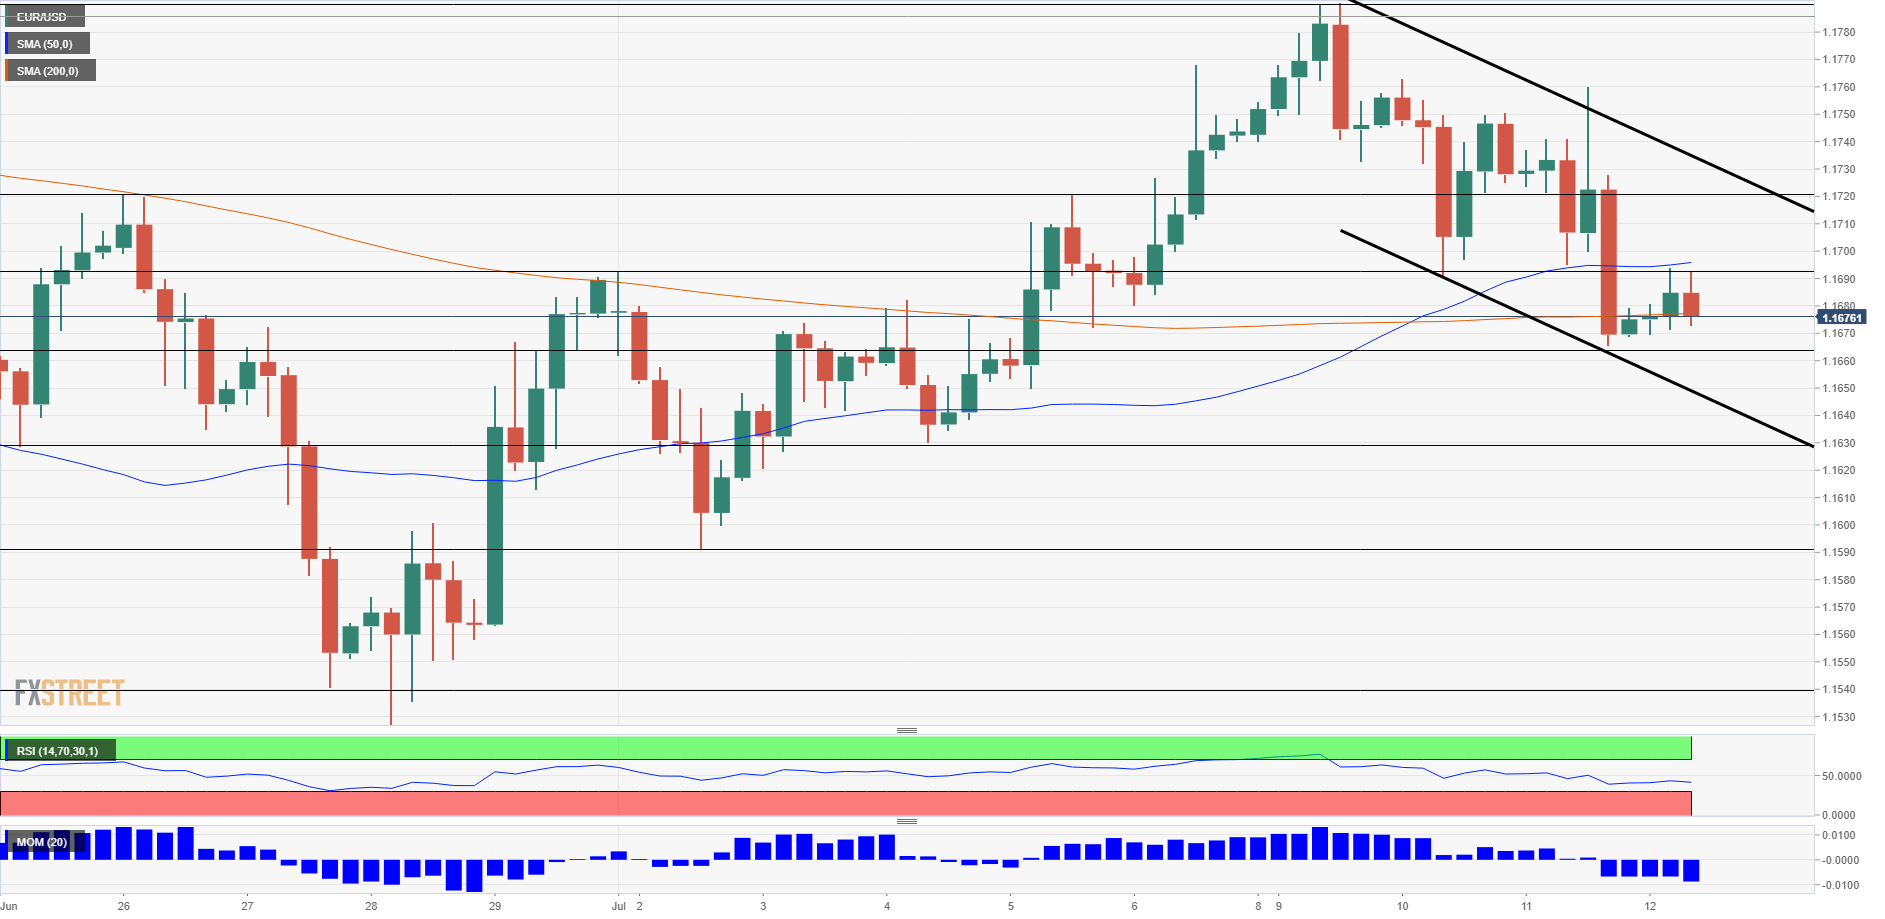 EUR USD technical analysis July 12 2018